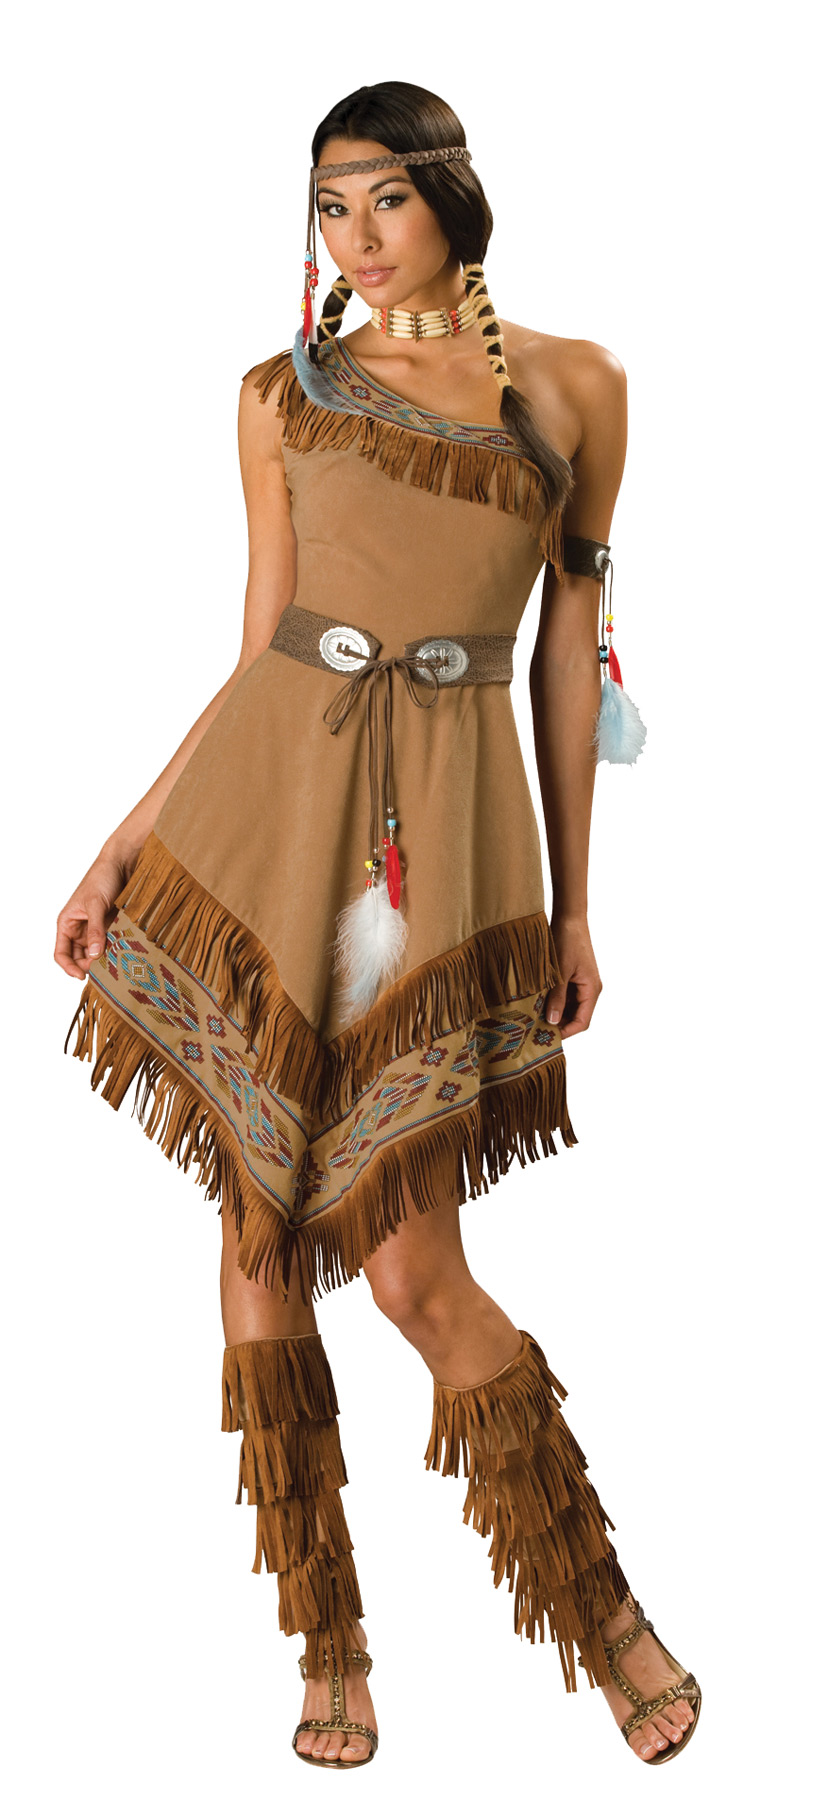 INDIAN MAIDEN (Sizes (S-M-L): Size: Small)